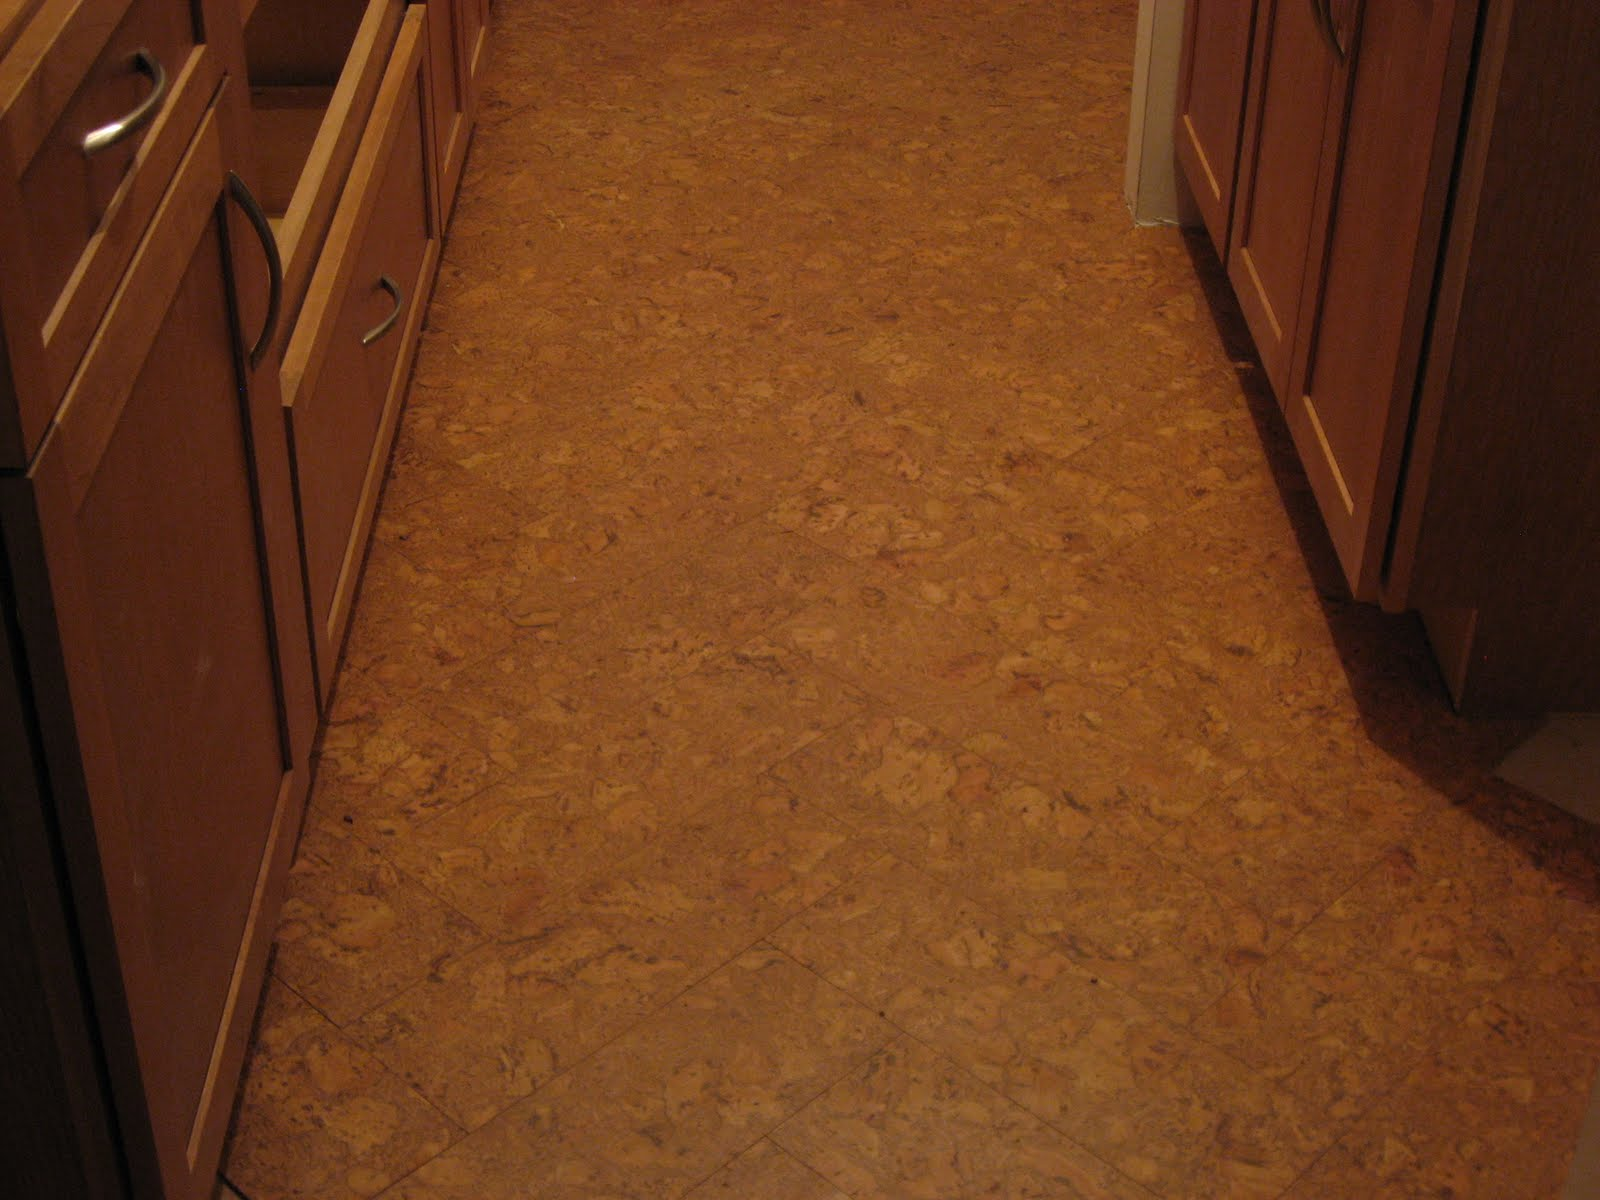 Cork Flooring Product : Cork floors in bathroom ownsearle